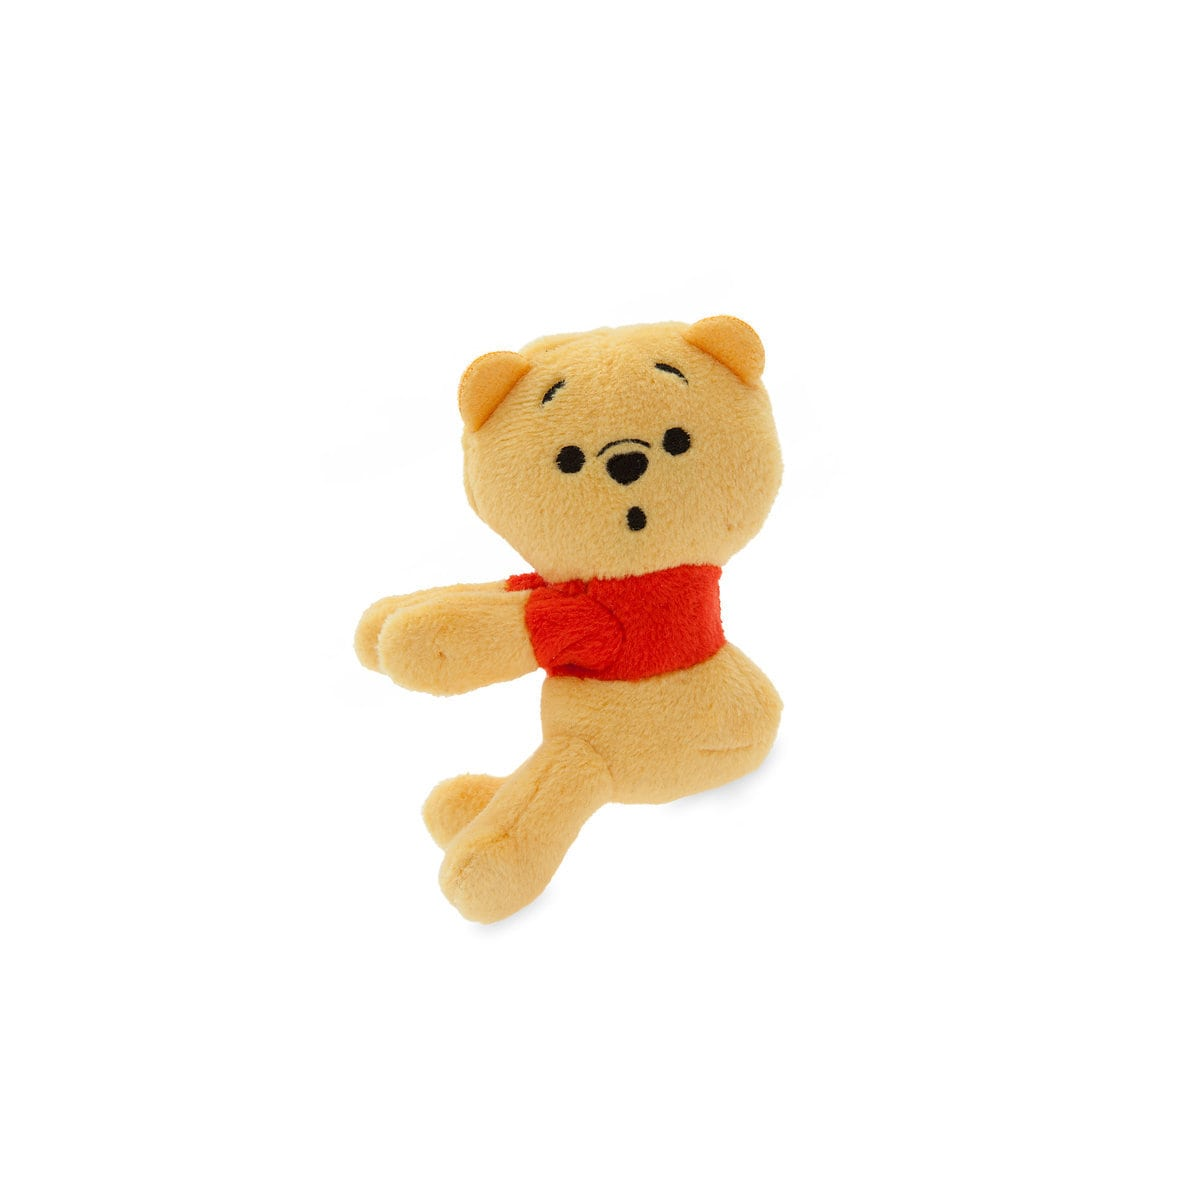 41709452610a Product Image of Winnie the Pooh Plush Clip-On - Micro   1